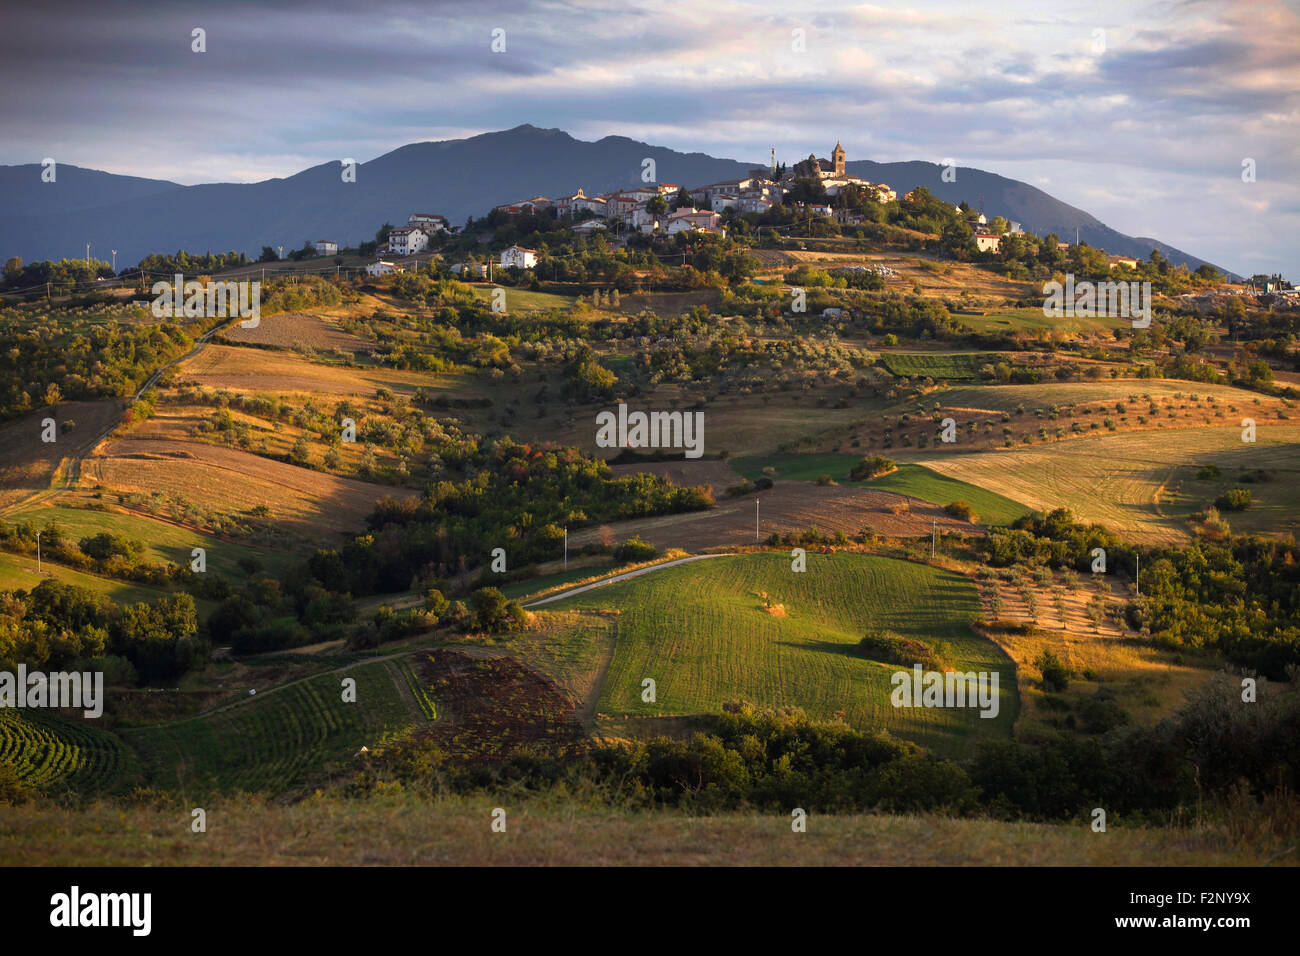 The countryside around Pietranico in Abruzzo, Italy. - Stock Image